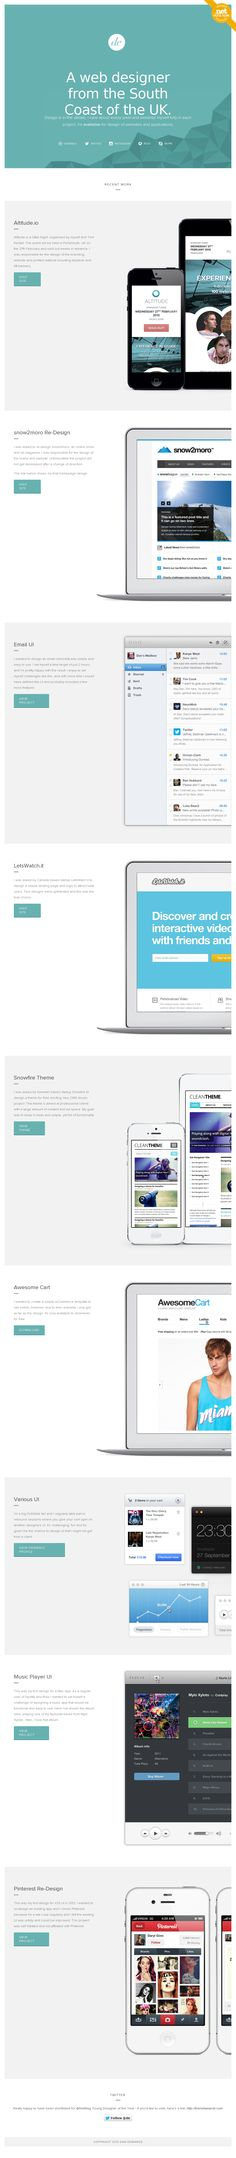 Website http://danedwards.me/ - Super clean with Super pictures